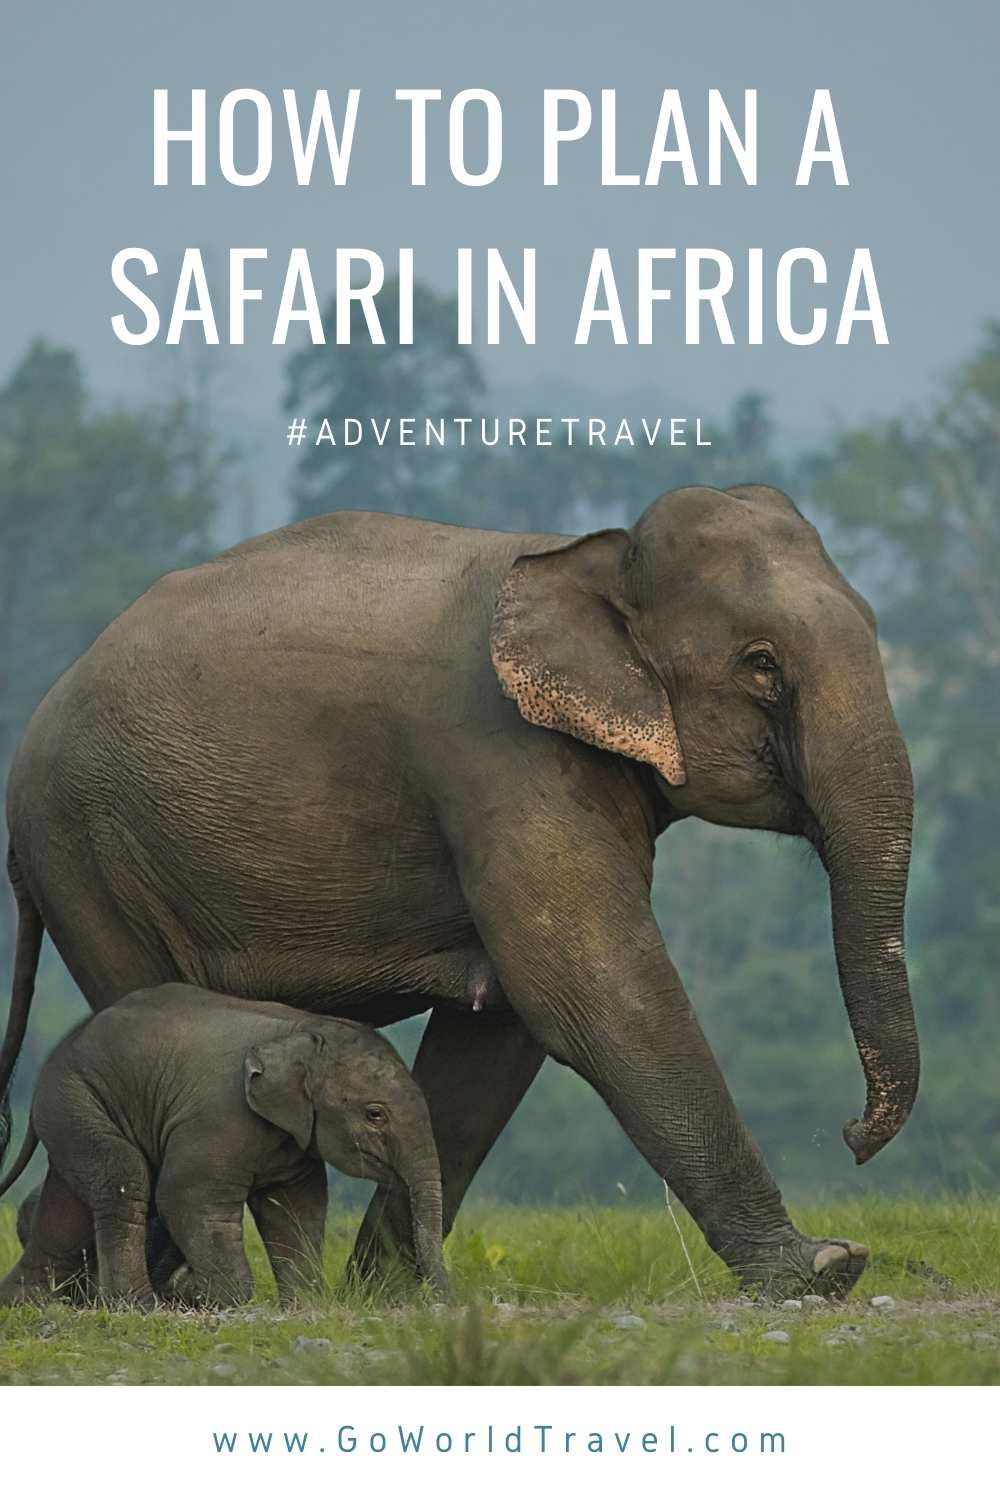 Planning a safari in Africa? Read our travel guide on how to find a safari guide in Africa, where to go, when to visit and more.